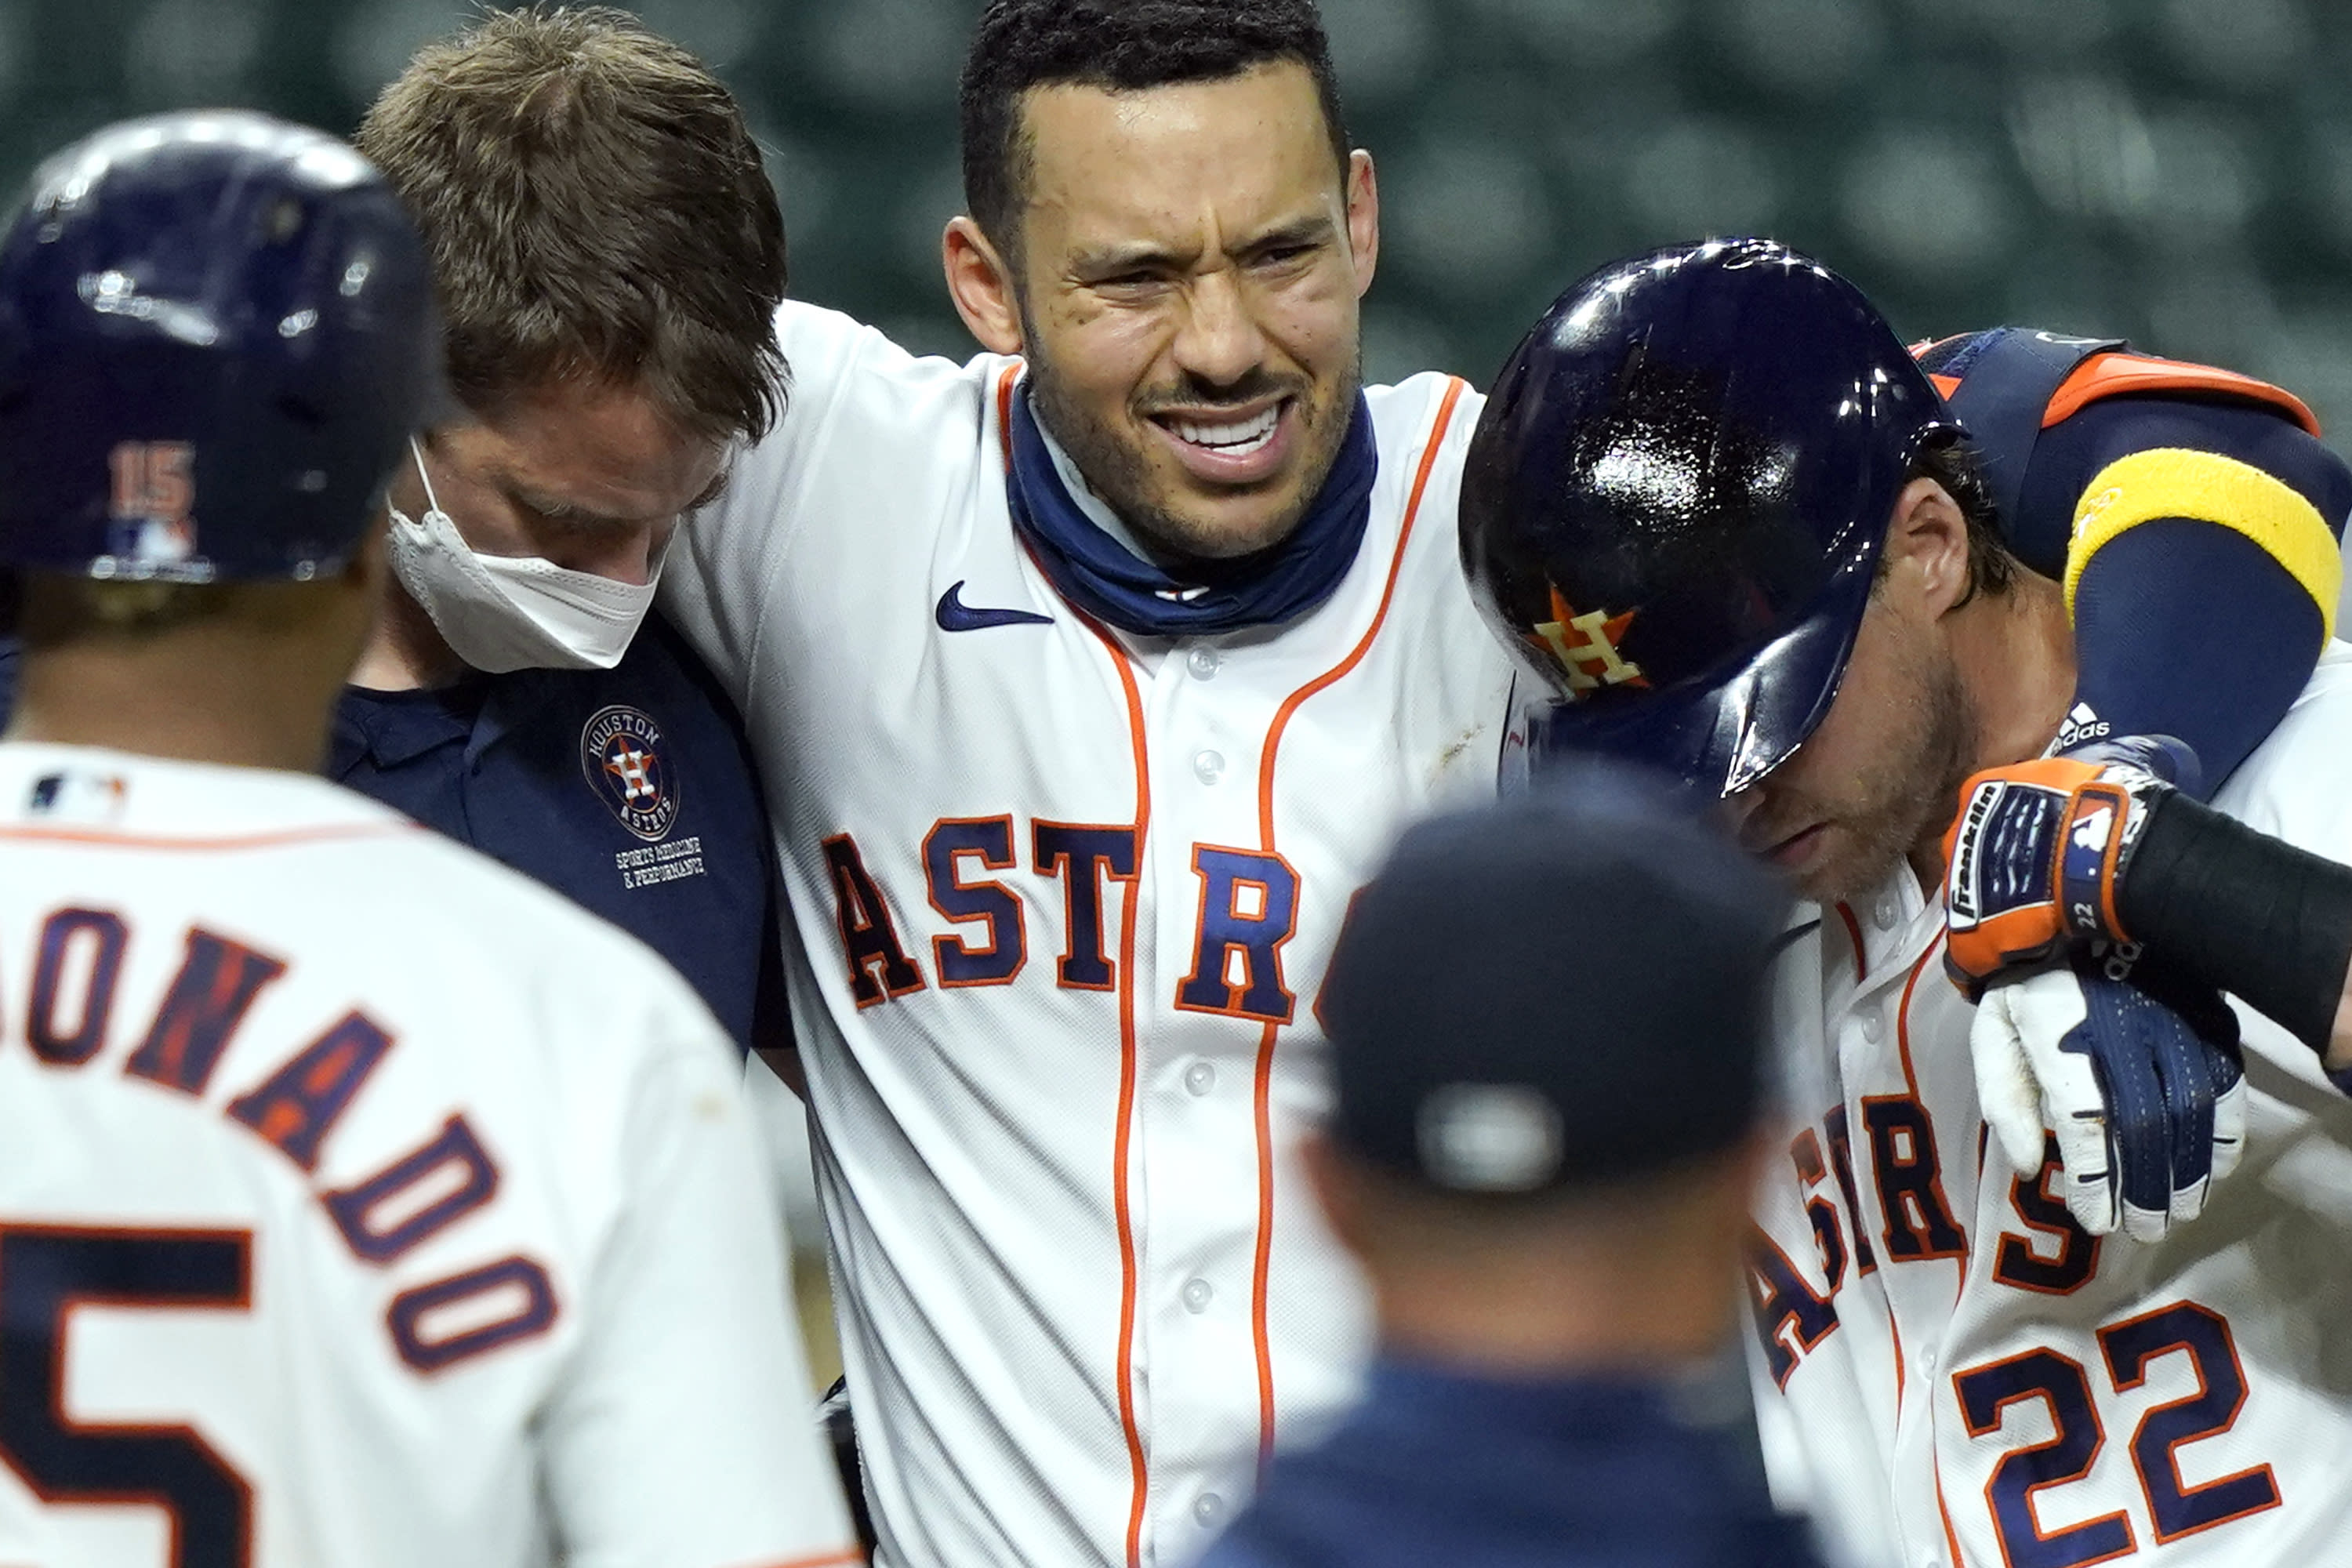 Houston Astros' Carlos Correa, center, is helped off the field after fouling a pitch off his leg during the sixth inning of a baseball game against the Texas Rangers Tuesday, Sept. 15, 2020, in Houston. (AP Photo/David J. Phillip)